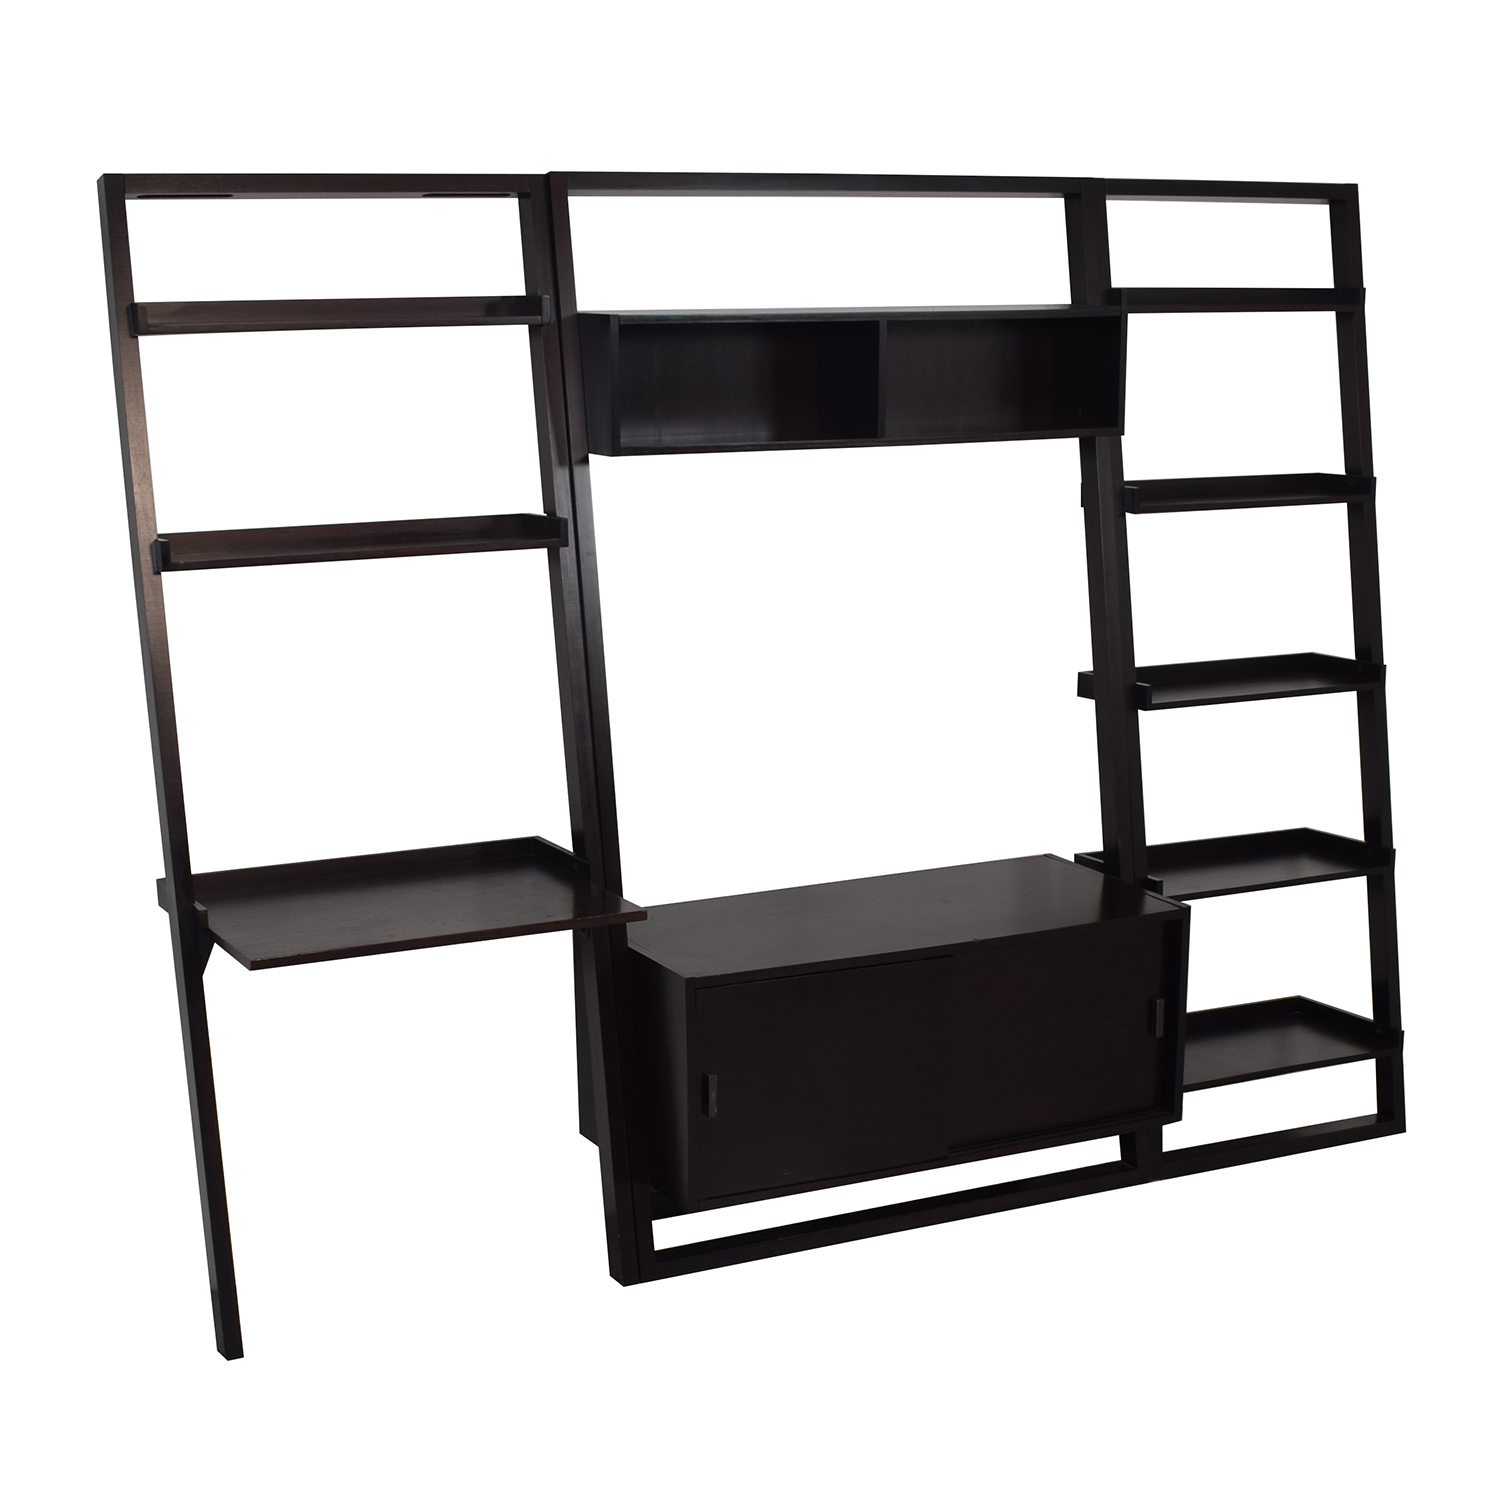 Crate & Barrel Crate & Barrel Sloane Leaning Bookcase used